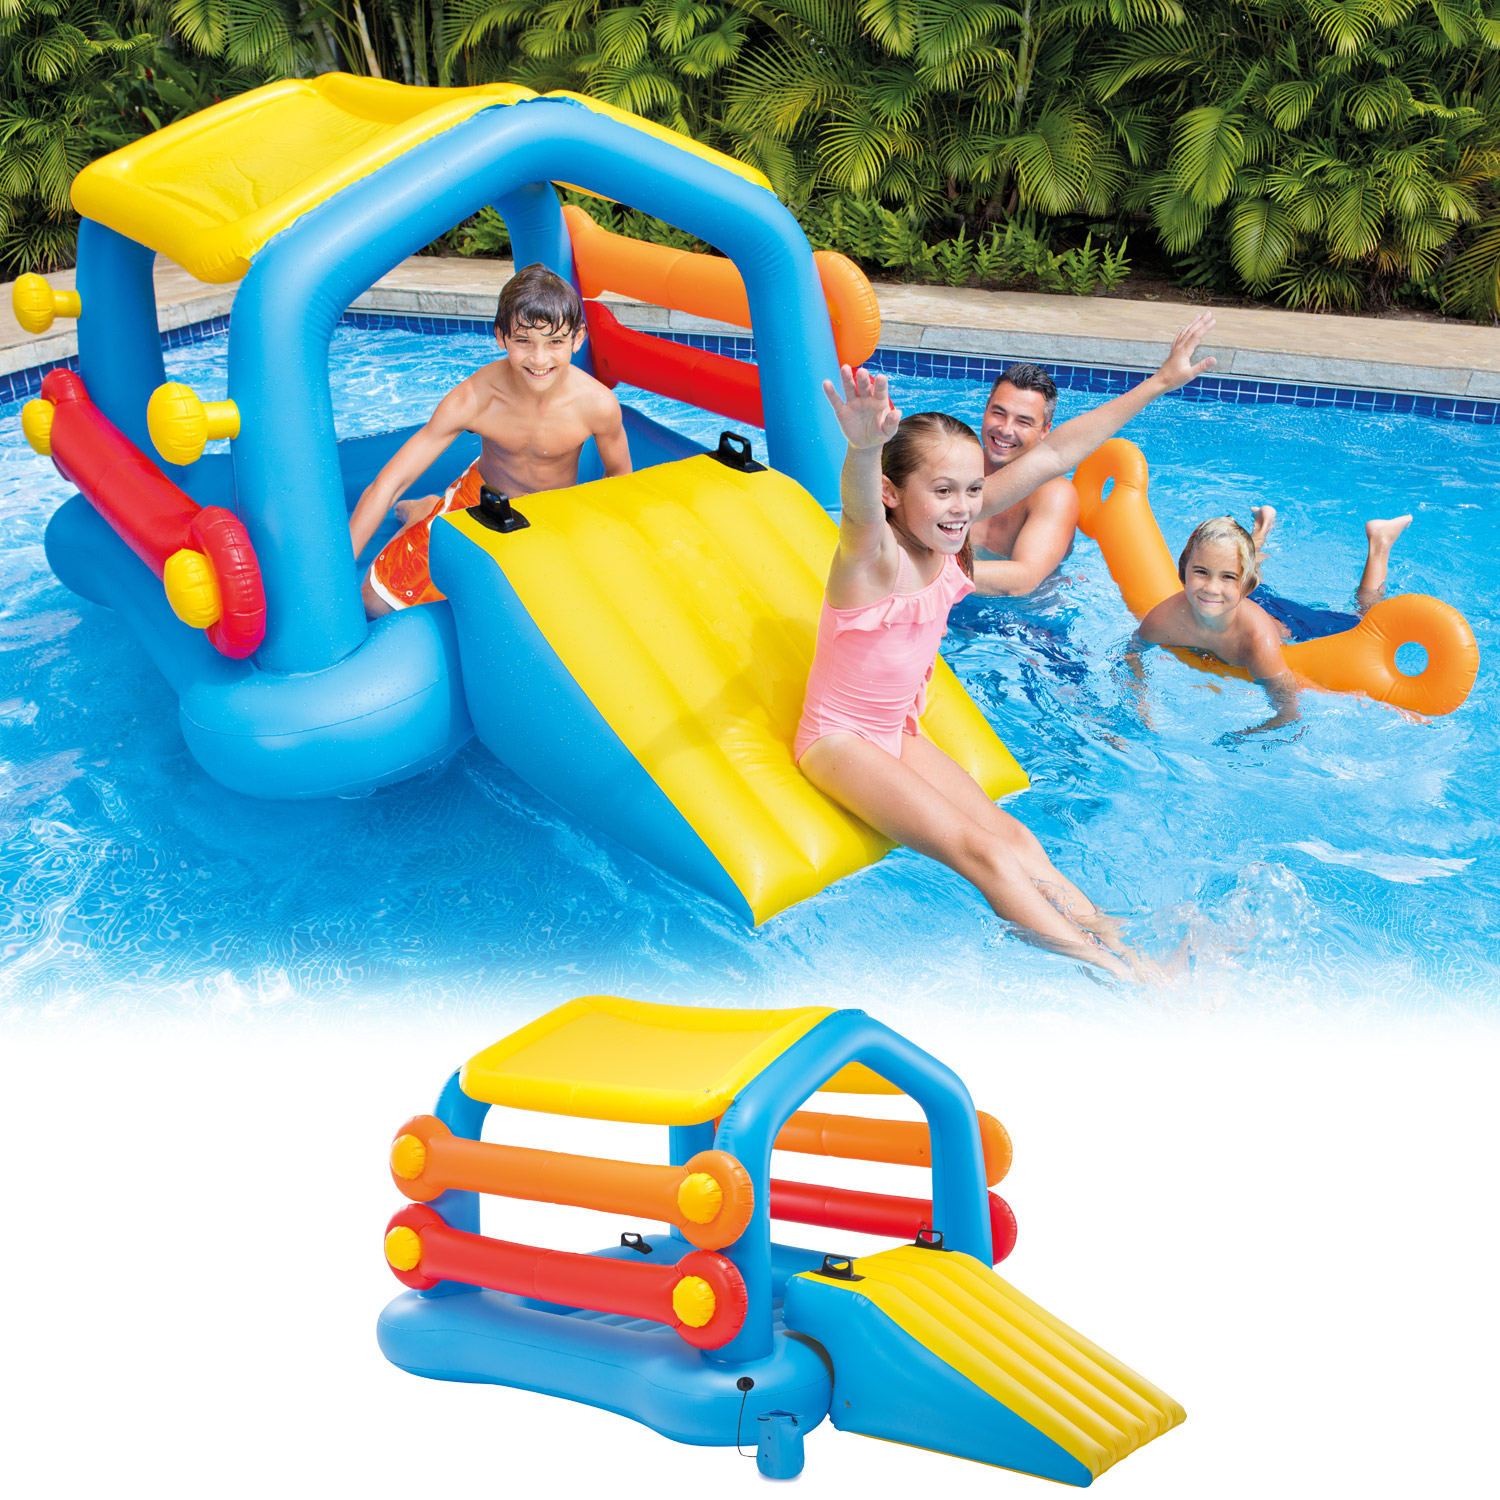 intex badeinsel planschbecken kinder pool mit rutsche spielcenter wasserrutsche ebay. Black Bedroom Furniture Sets. Home Design Ideas